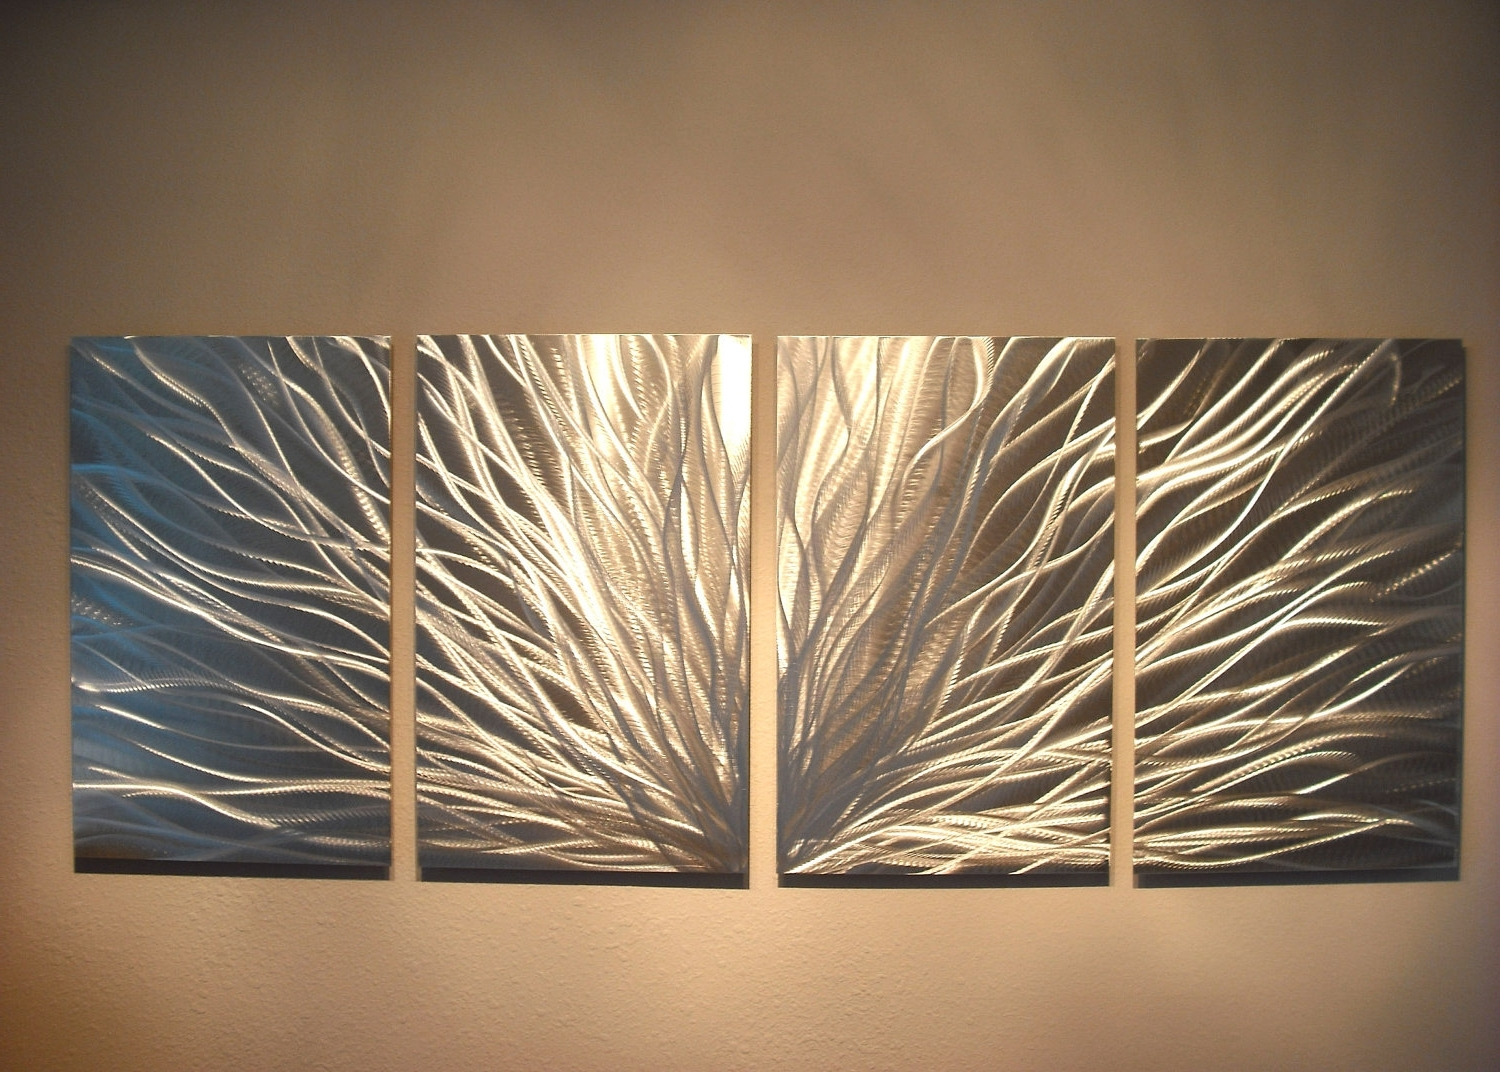 Abstract Metal Wall Art Within Recent Radiance – Abstract Metal Wall Art Contemporary Modern Decor (View 8 of 15)